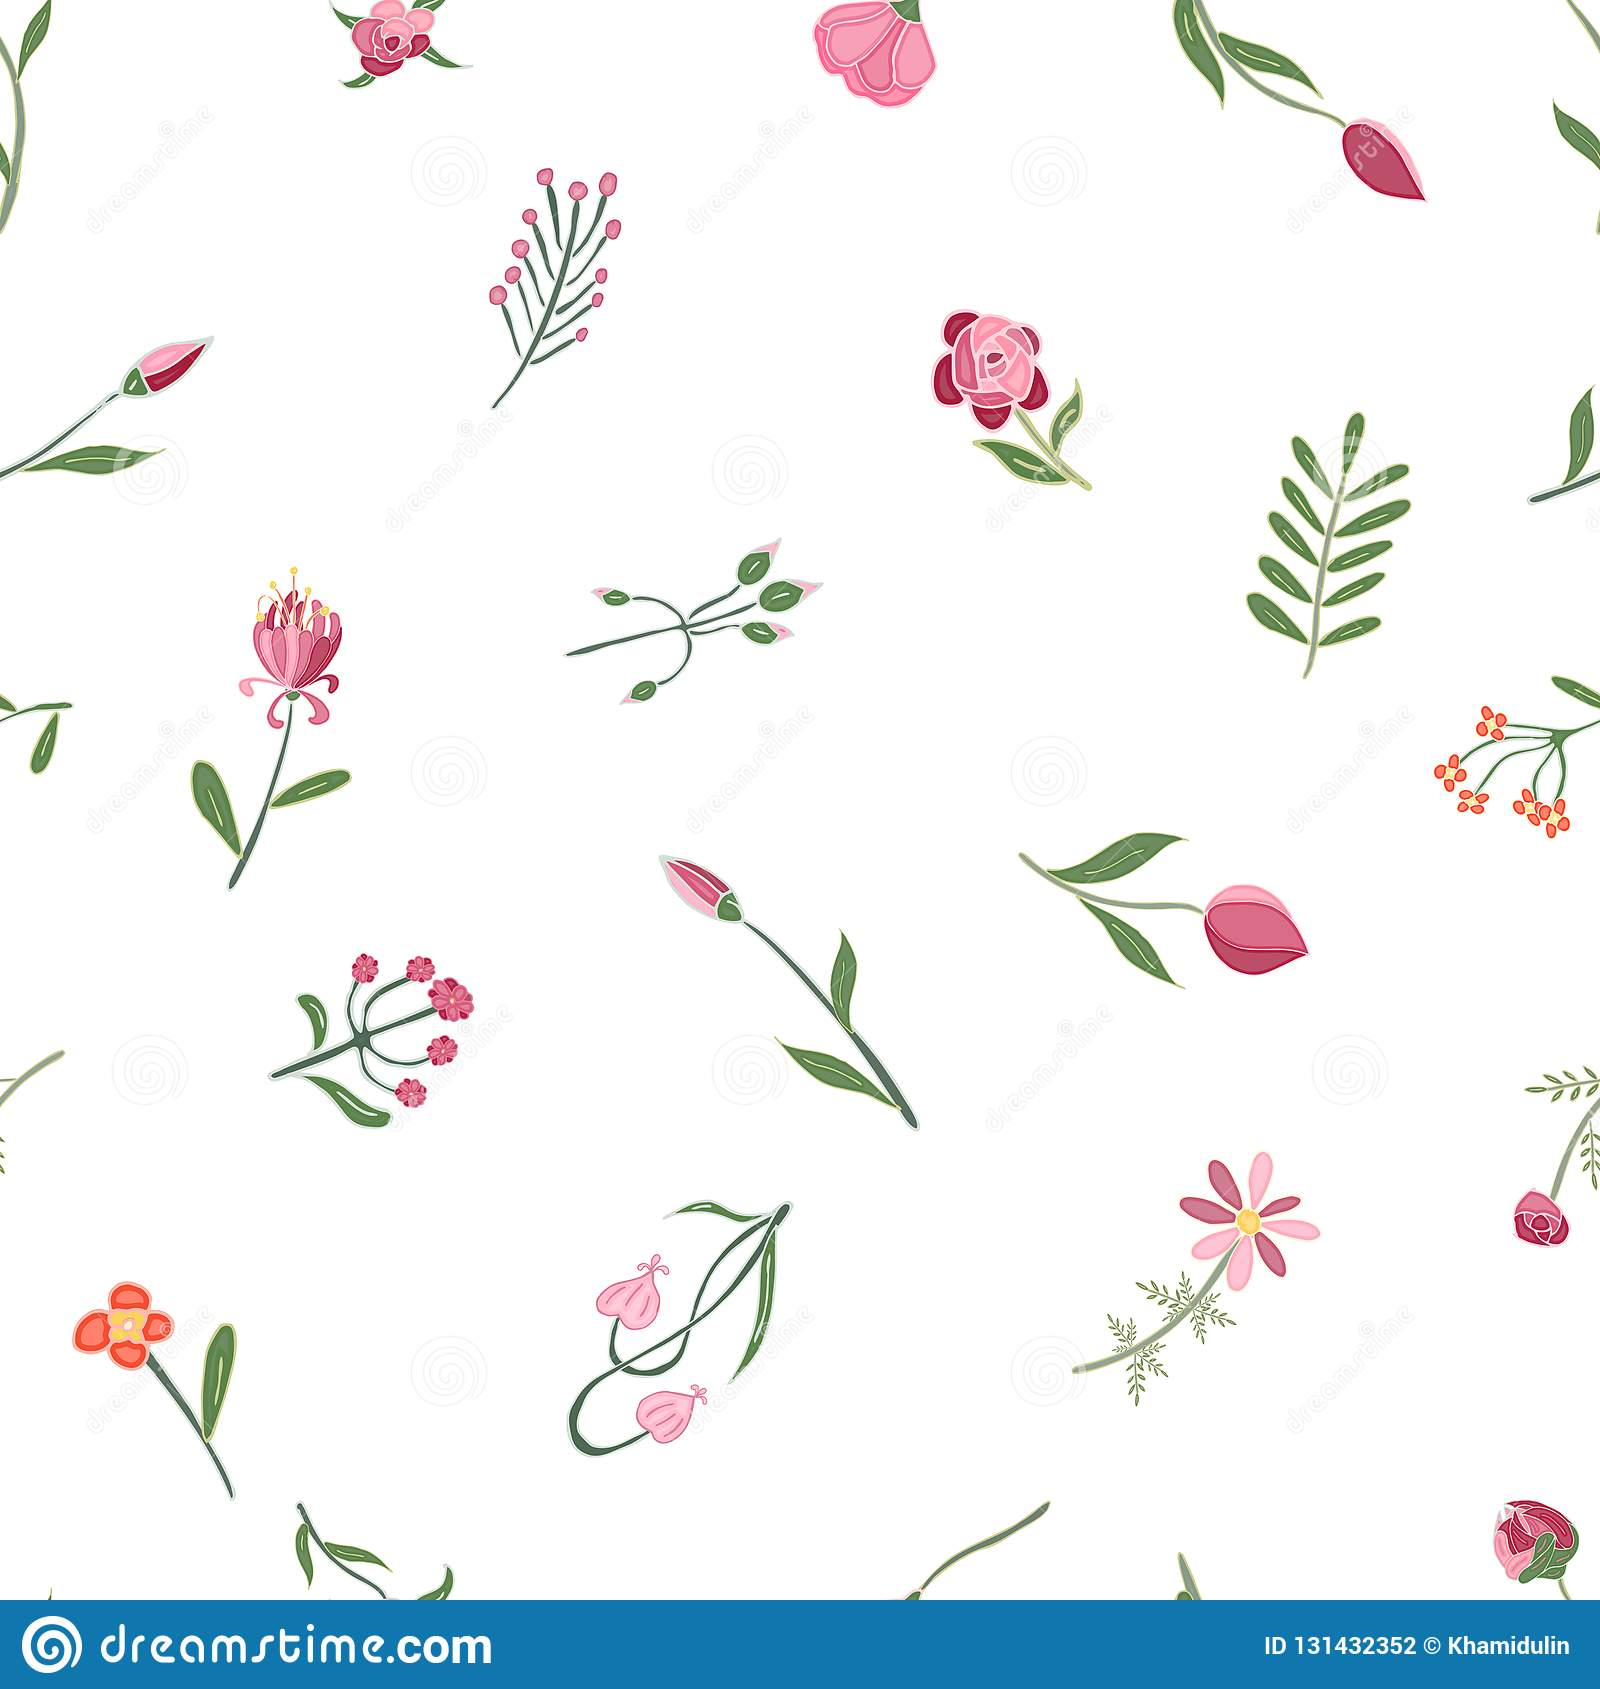 Vector Romantic hand drawn background with flowers. Vintage seamless pattern illustration.